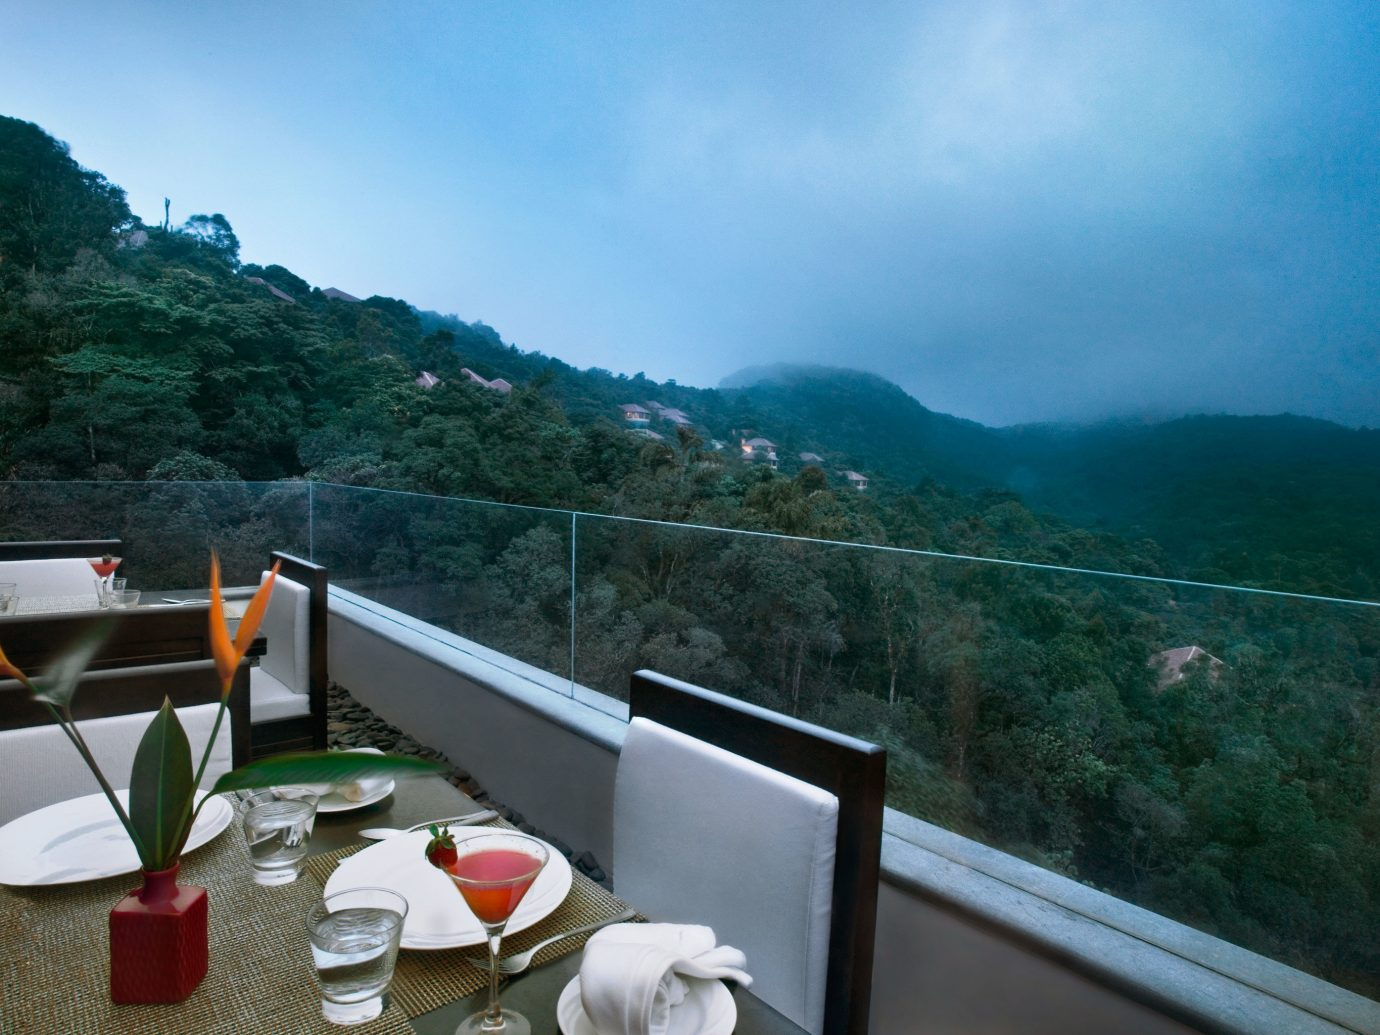 Balcony Dining Drink Eat Elegant Forest Hotels Luxury Patio Scenic views Terrace outdoor mountain vacation tourism travel Sea mountain range